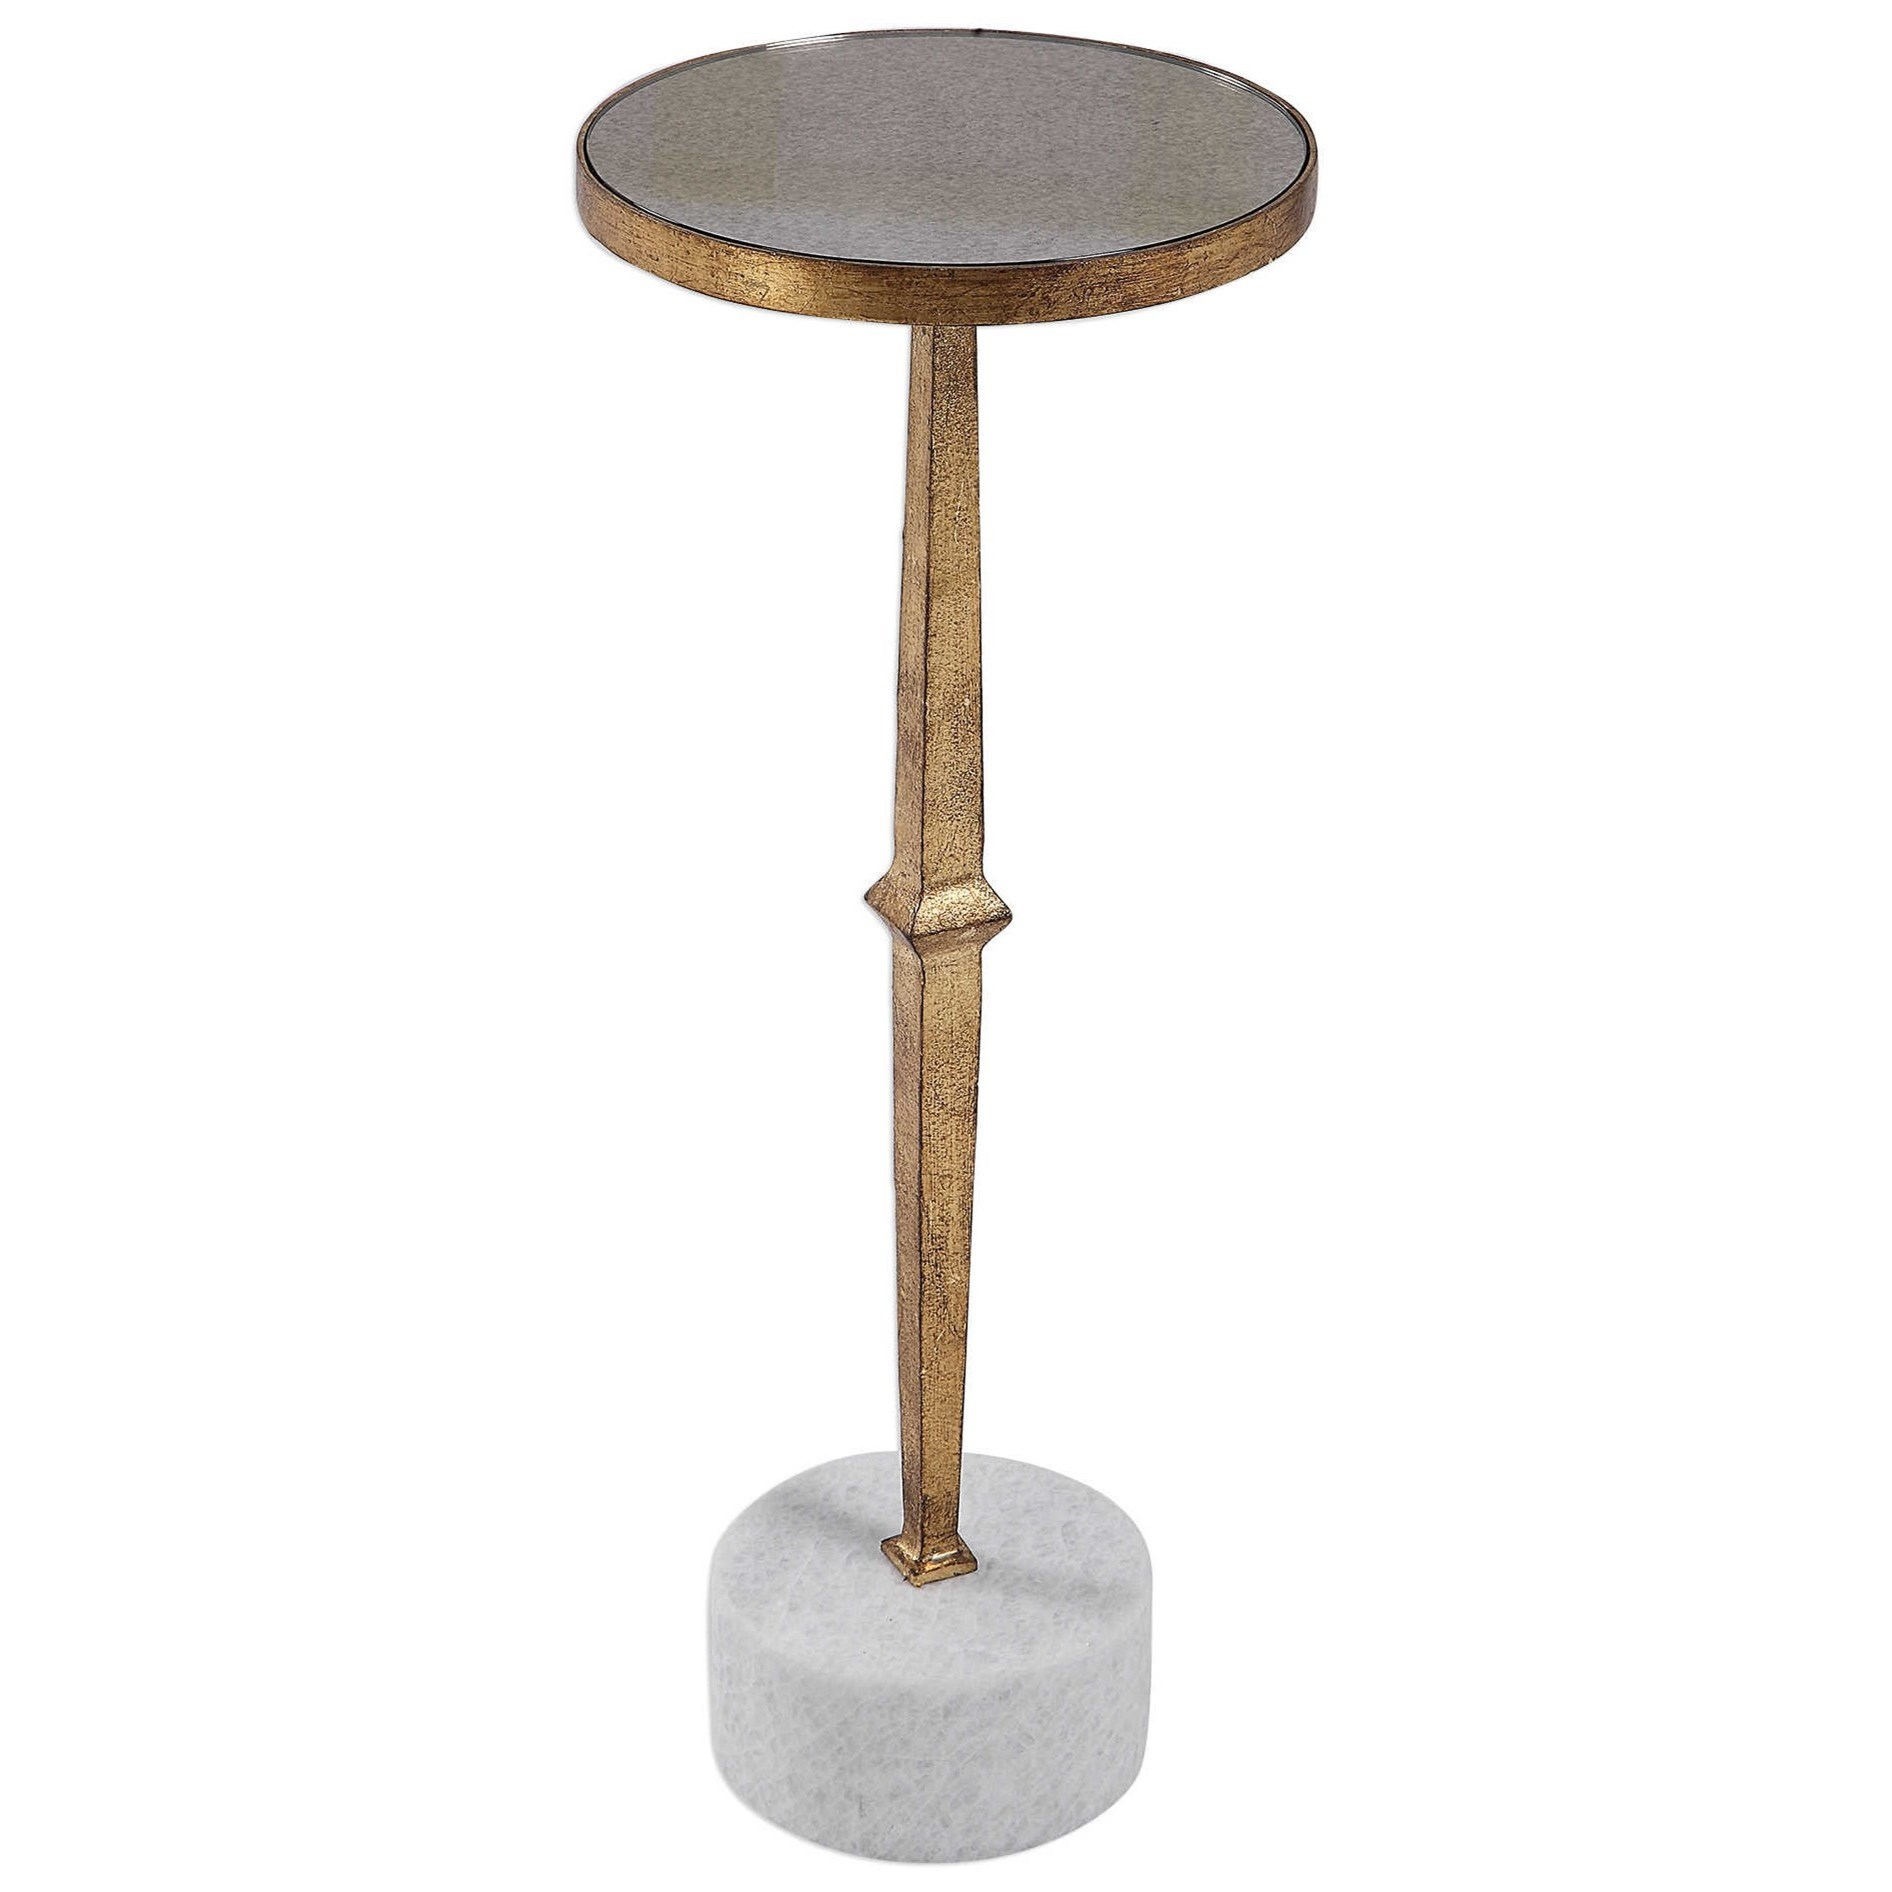 Accent Furniture - Occasional Tables Miriam Round Accent Table at Becker Furniture